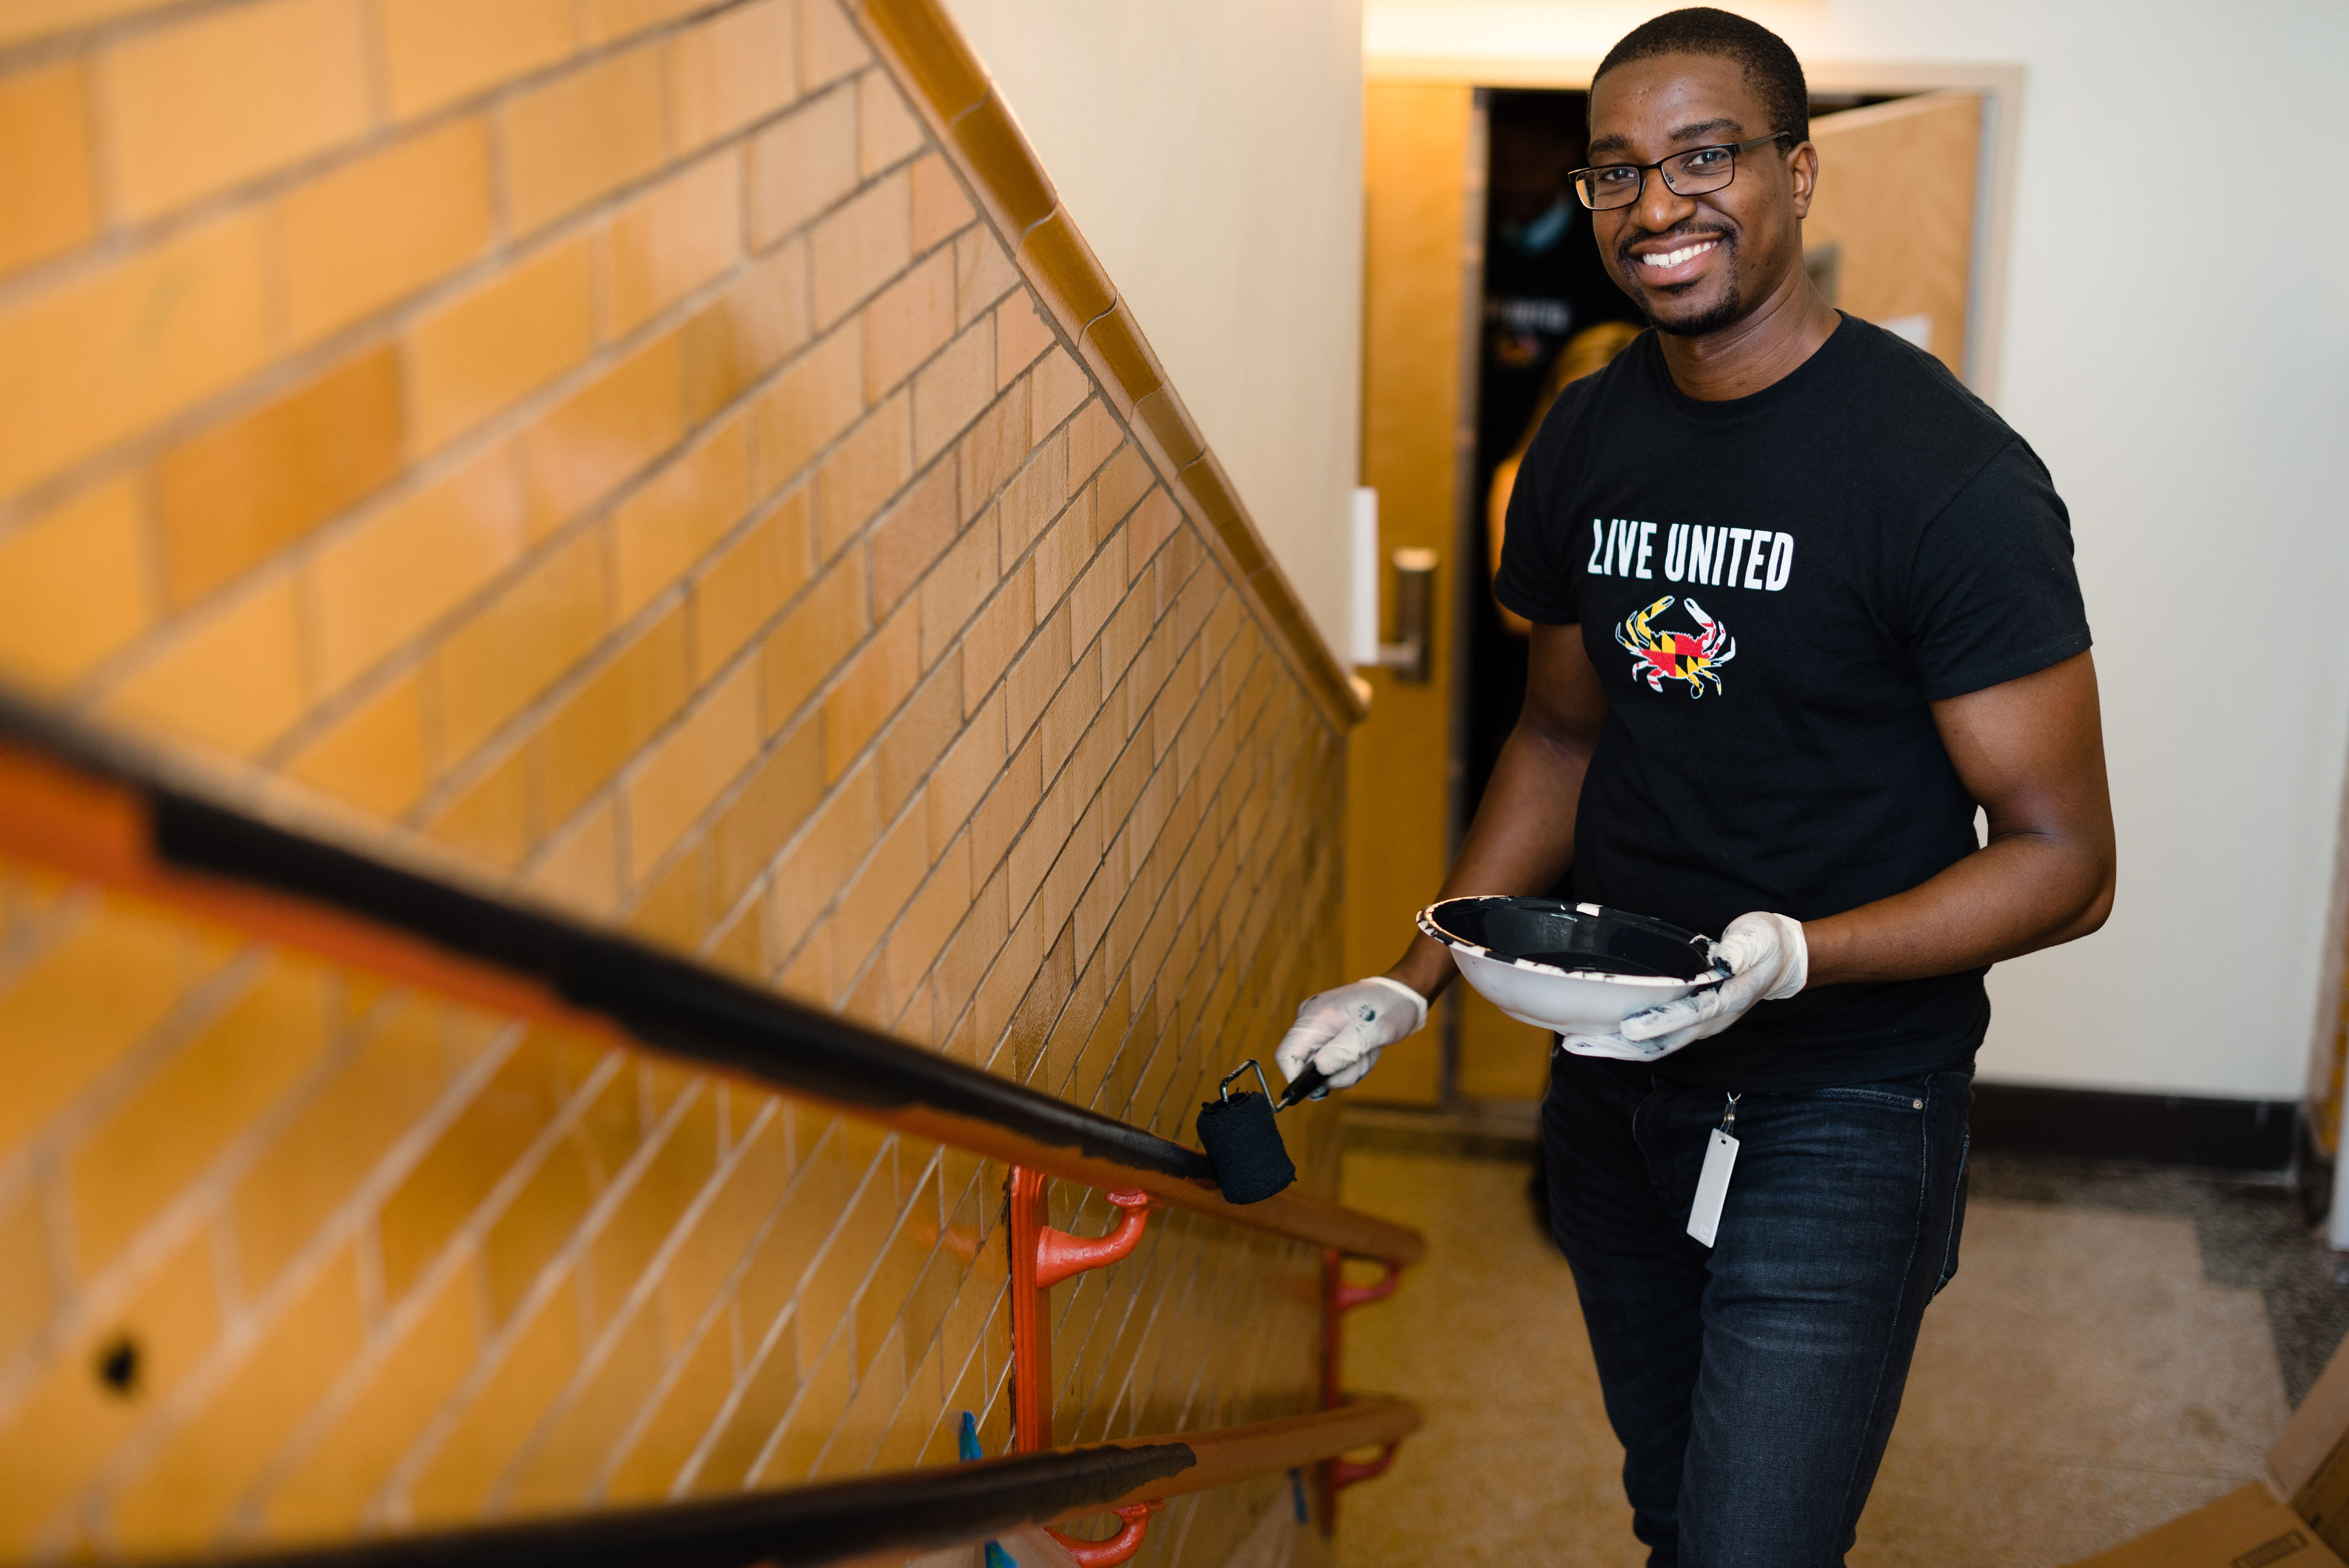 An Emerging Leaders United member volunteering to paints a railing at a clean up project